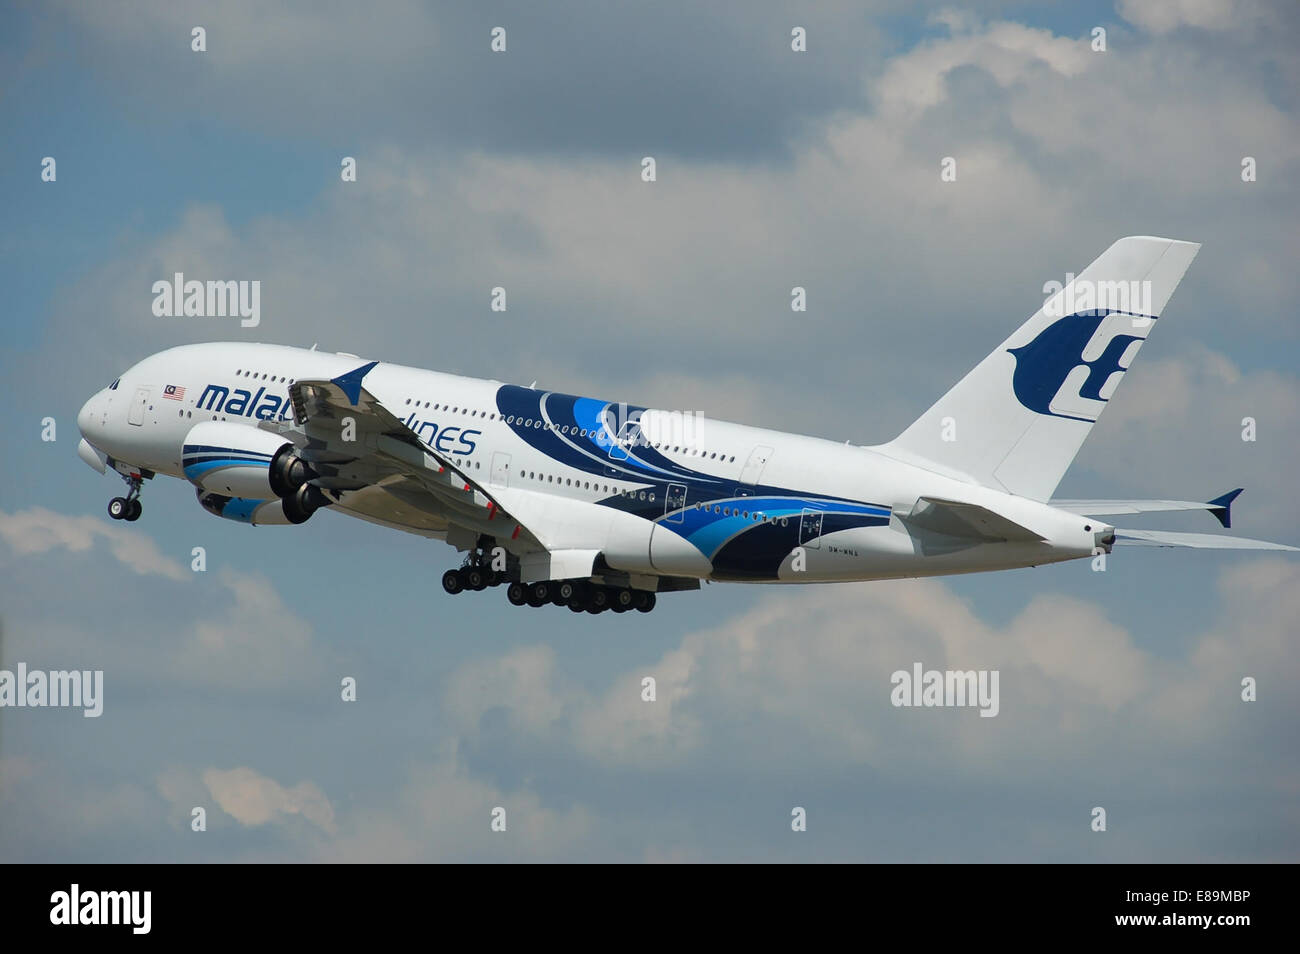 Malaysia Airlines Airbus A380-800 (9M-MNA) departs London Heathrow Airport, England. - Stock Image